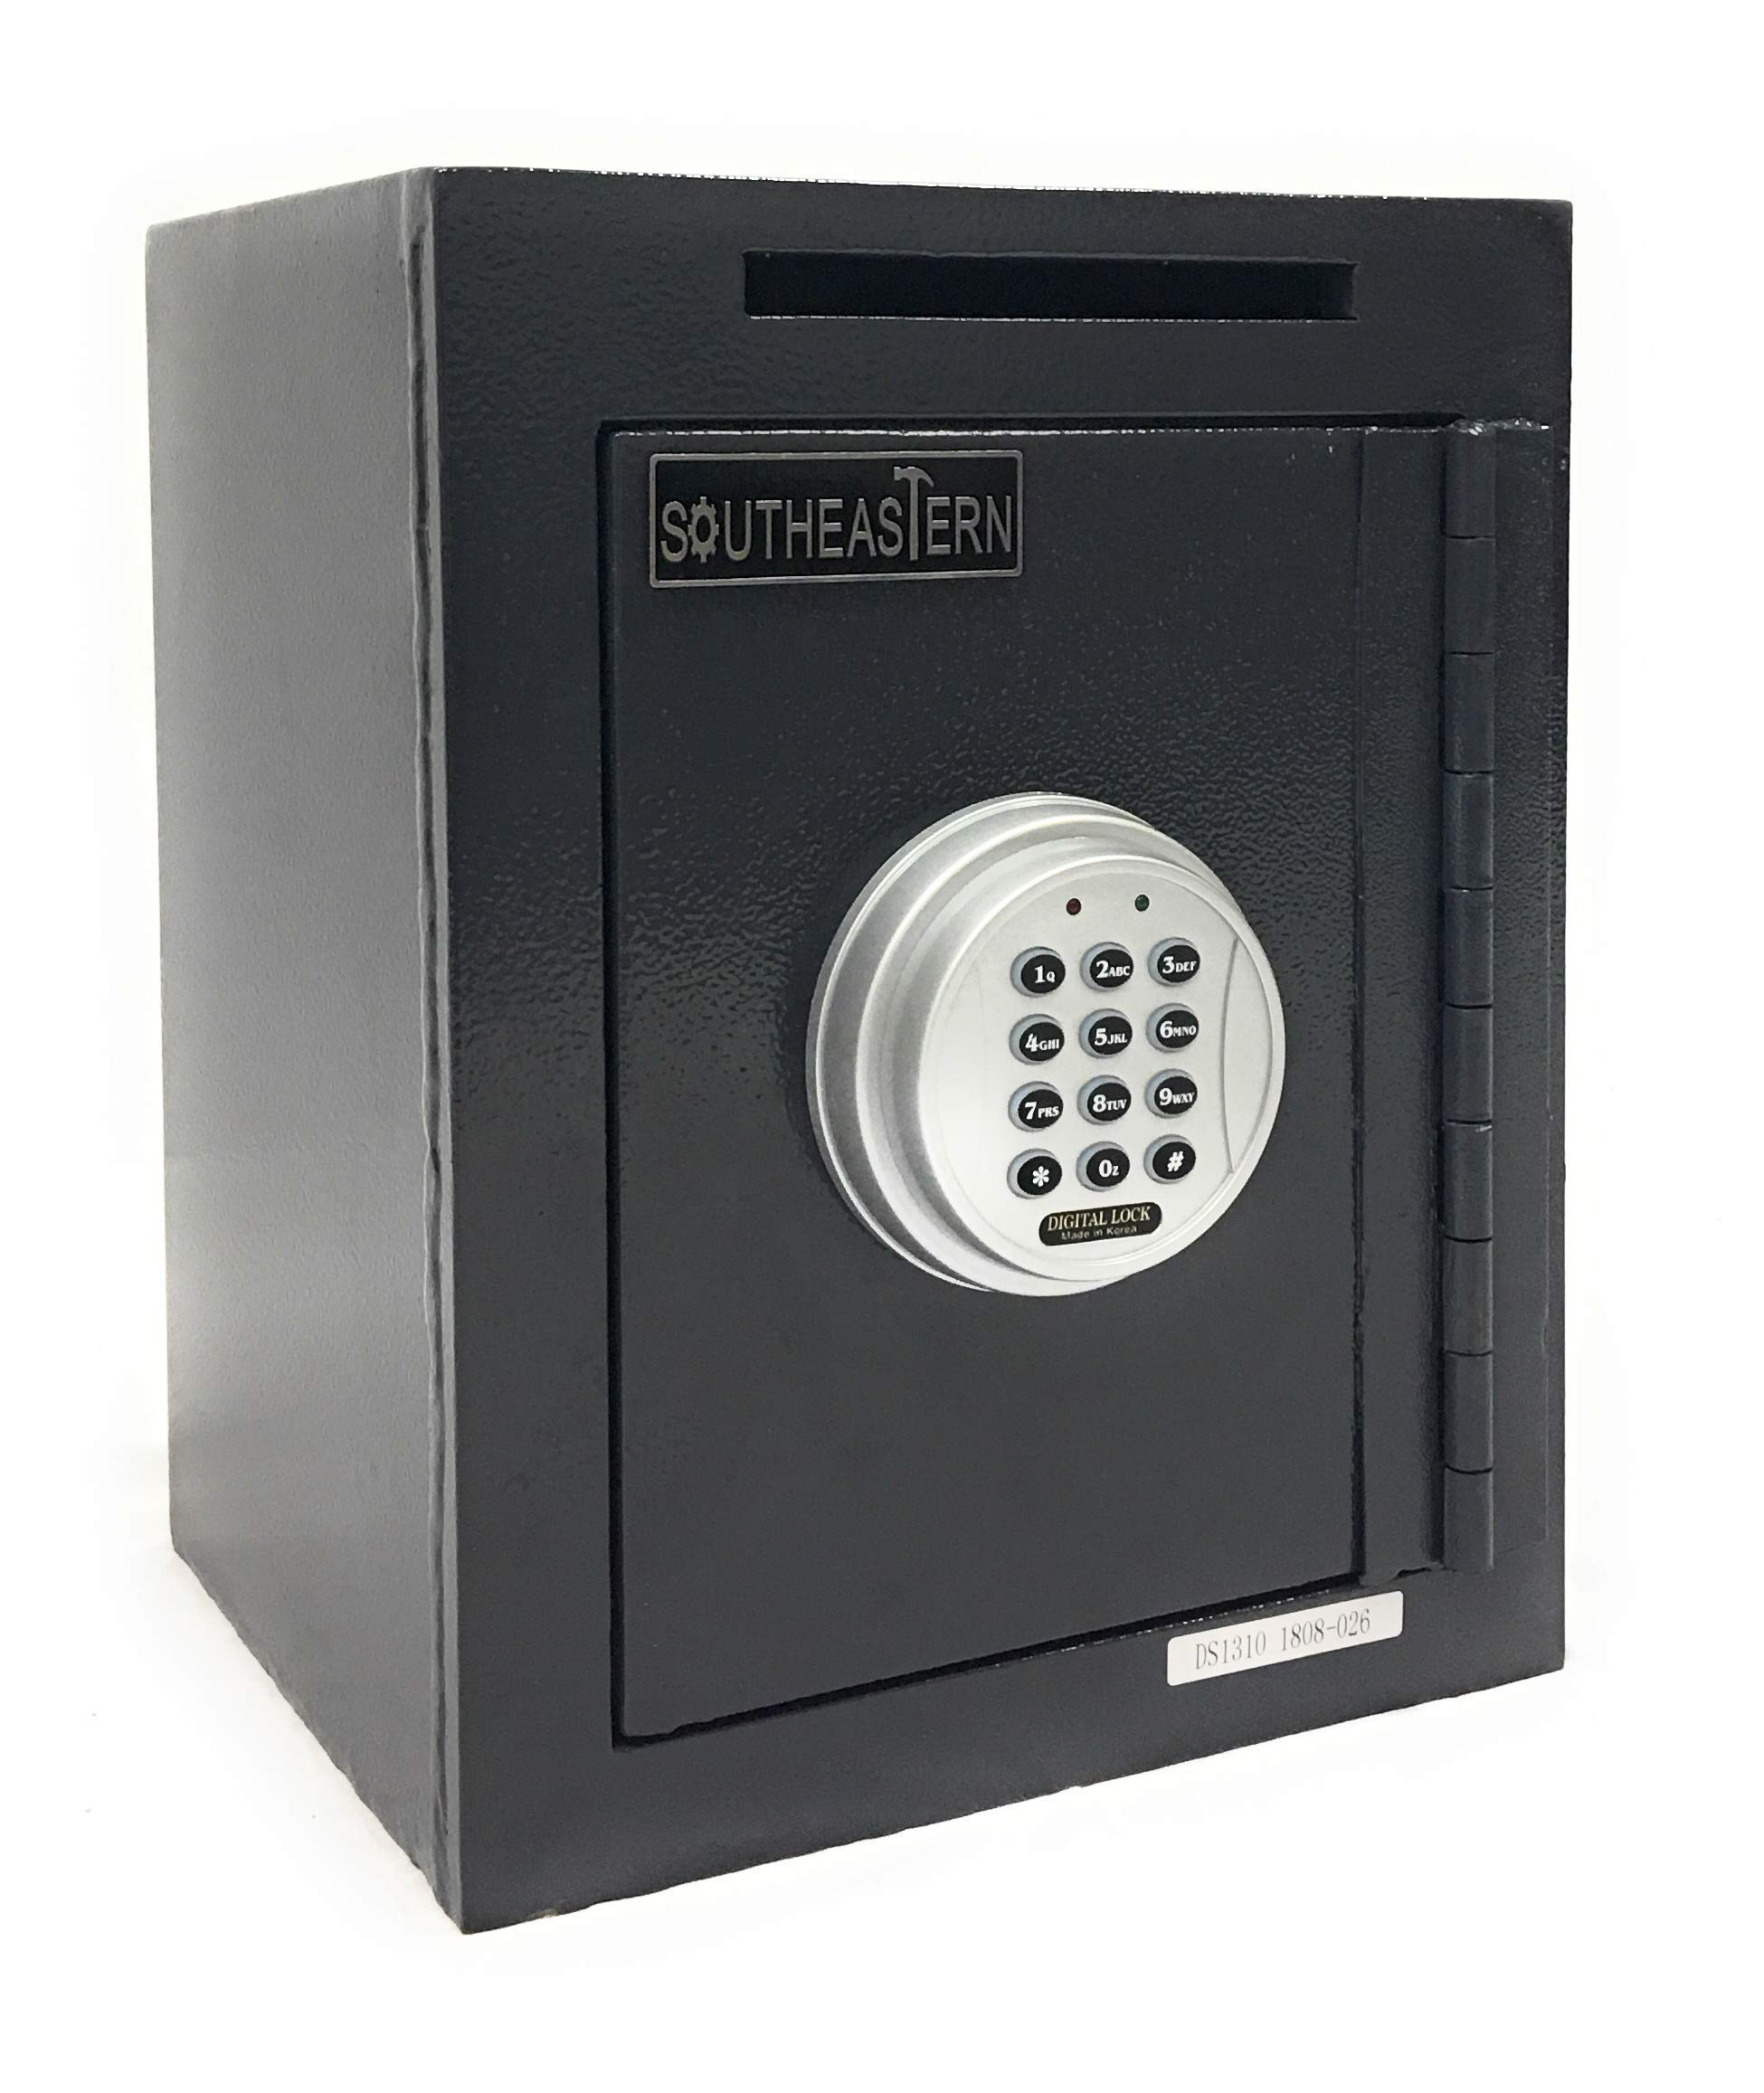 SOUTHEASTERN MS3E Under Counter B Rate Drop Slot Safe with Electronic Lock